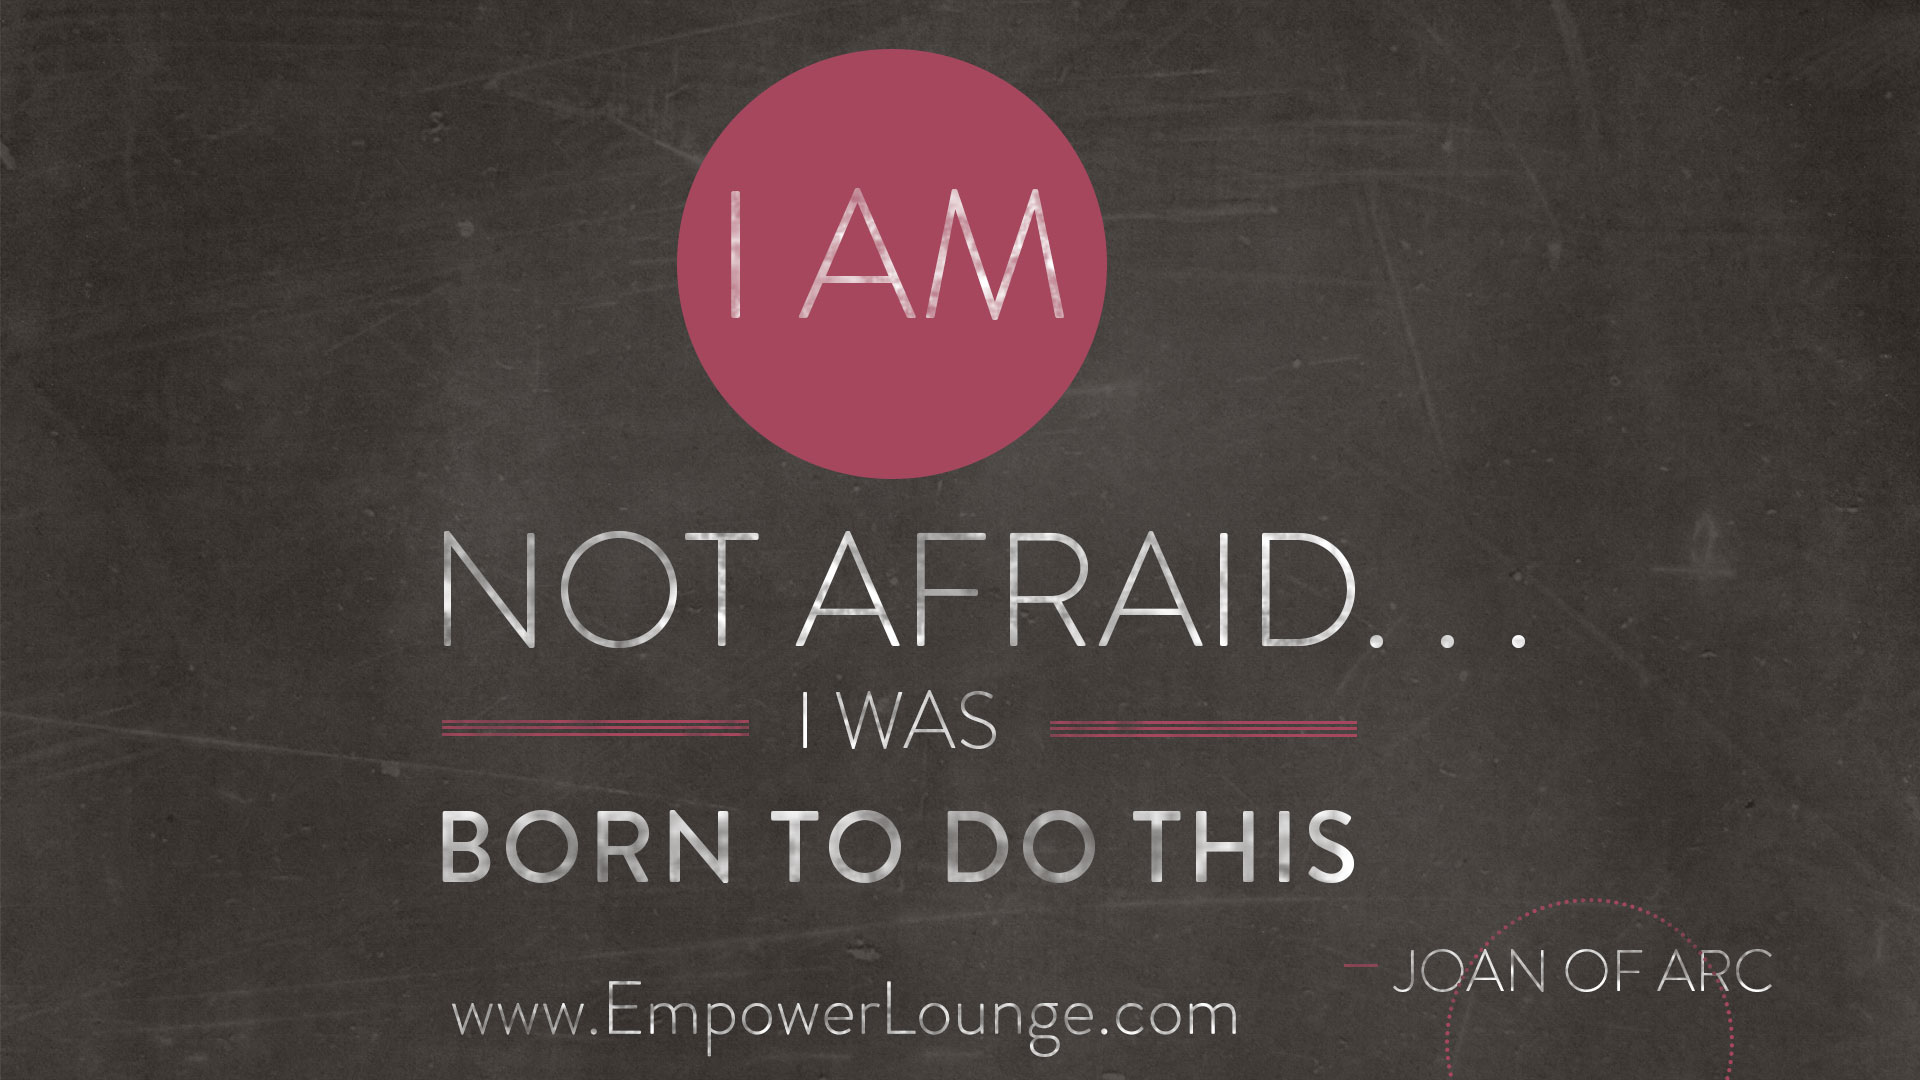 Empowering Women Quotes Inspiring Quoteswomen Trailblazers  Empower Lounge